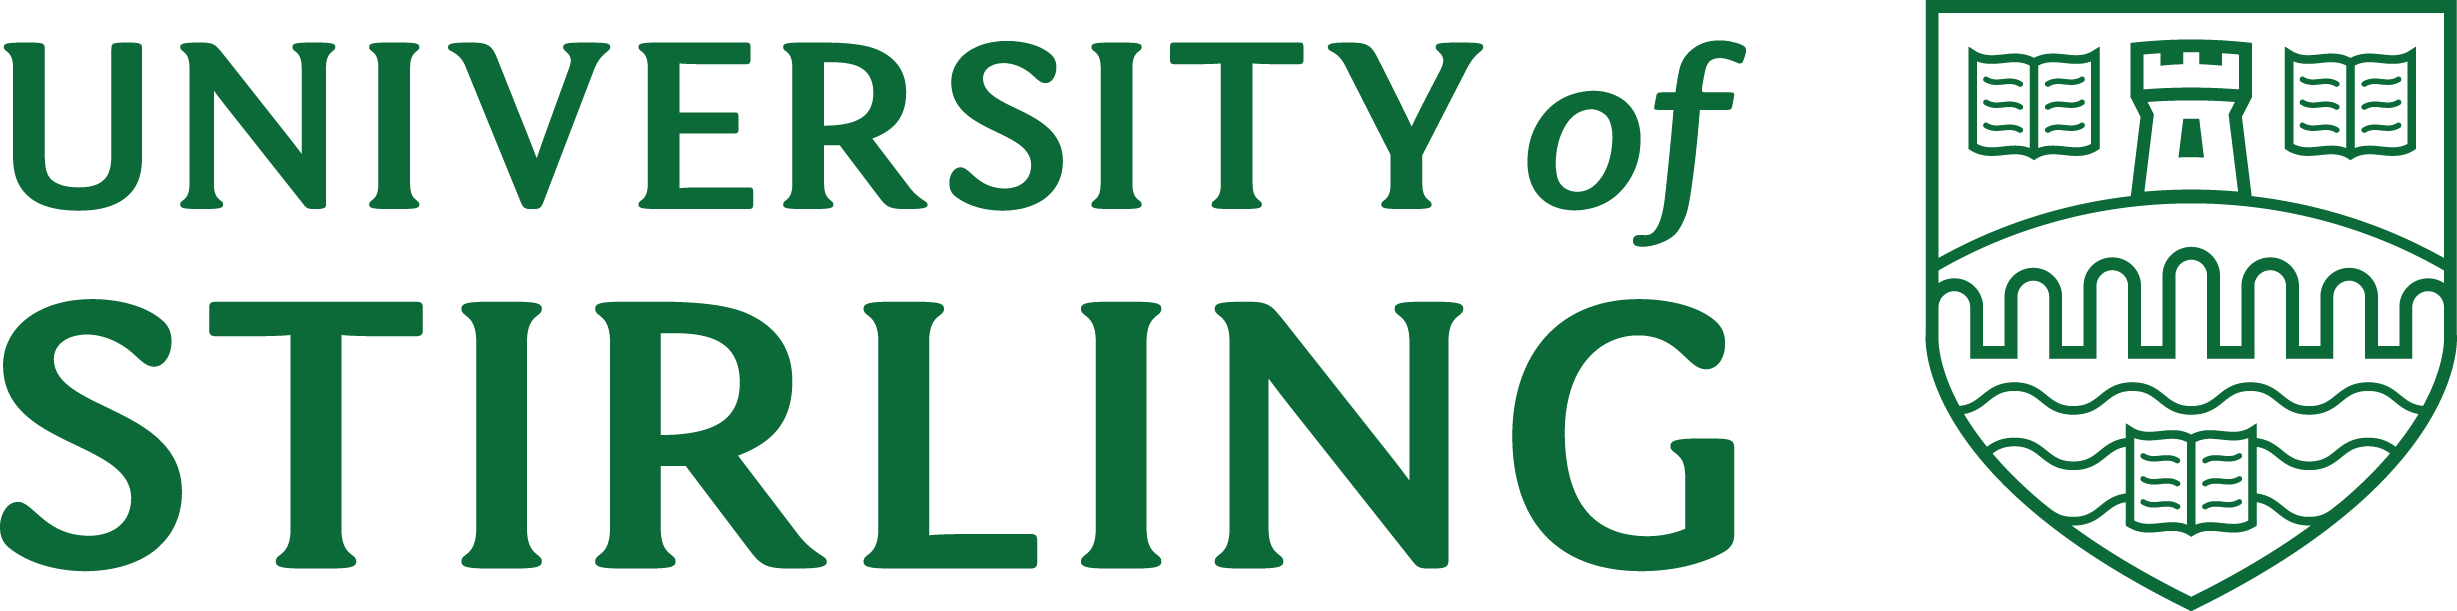 University of Stirling Blogs